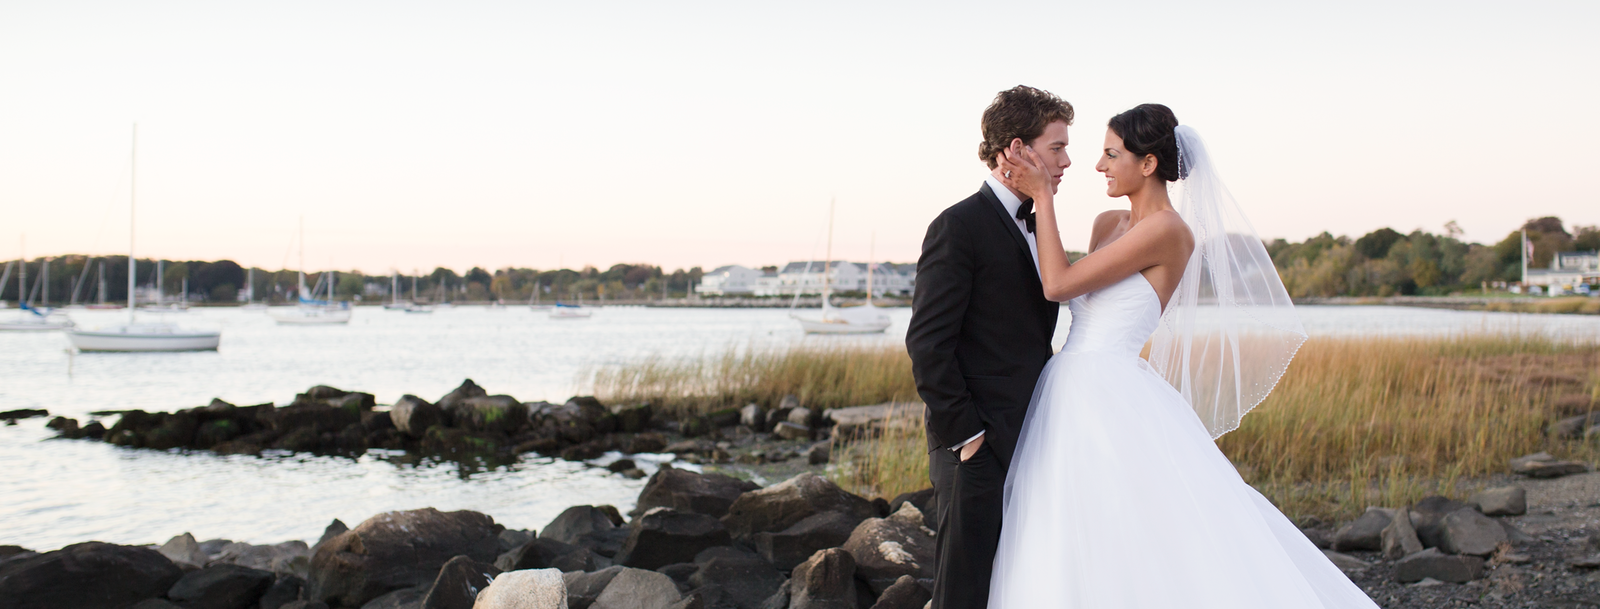 Bristol_Rhode_Island_Wedding_Bride_Groom_Harbor_Jaimie_Macari_Photo_Gallery